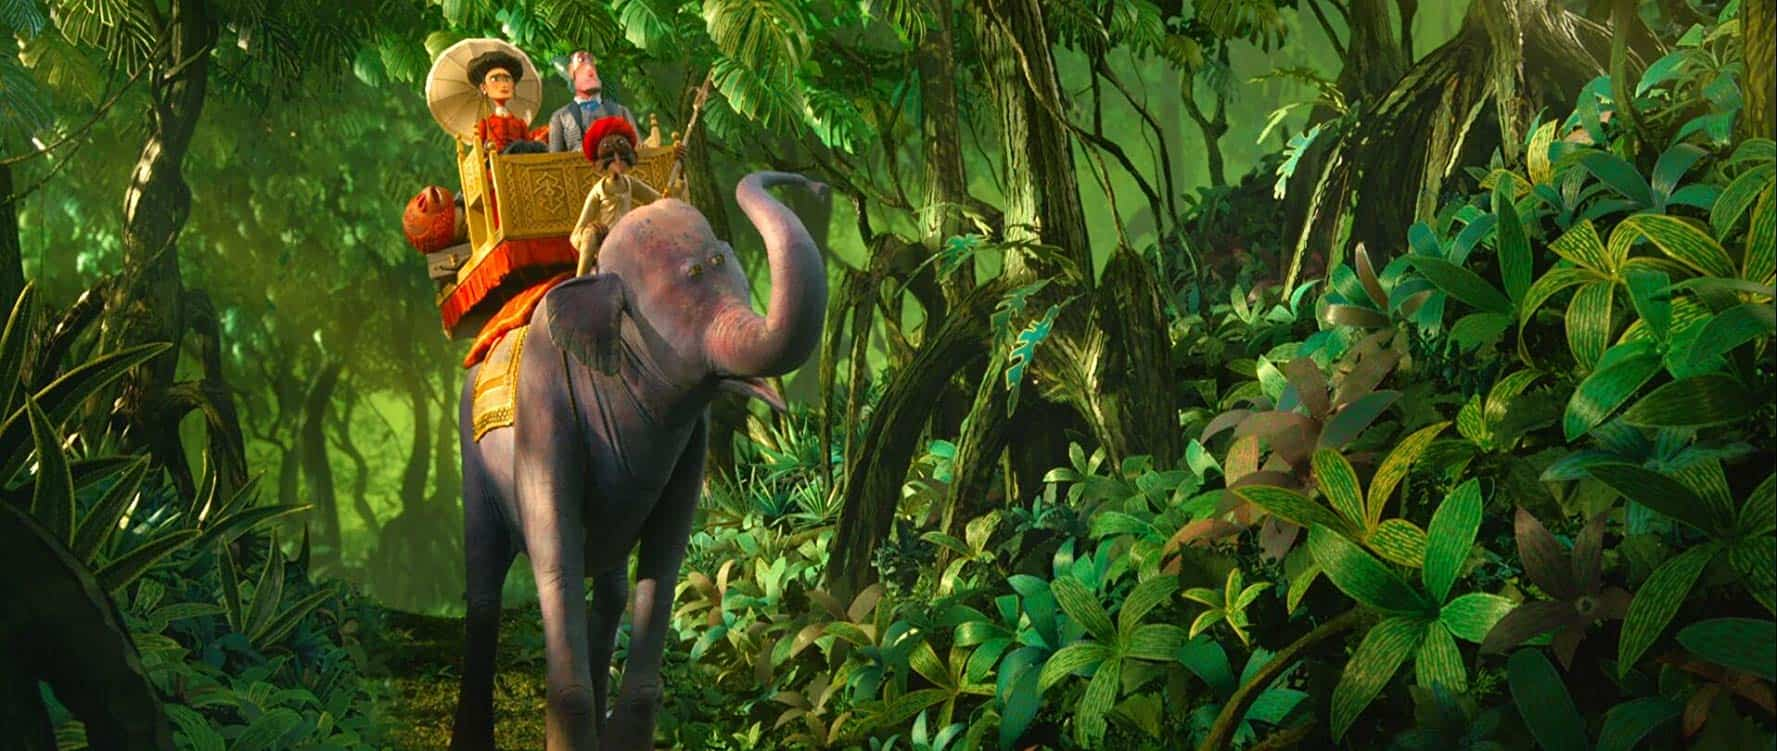 Missing Link movie riding an elephant in the rainforest